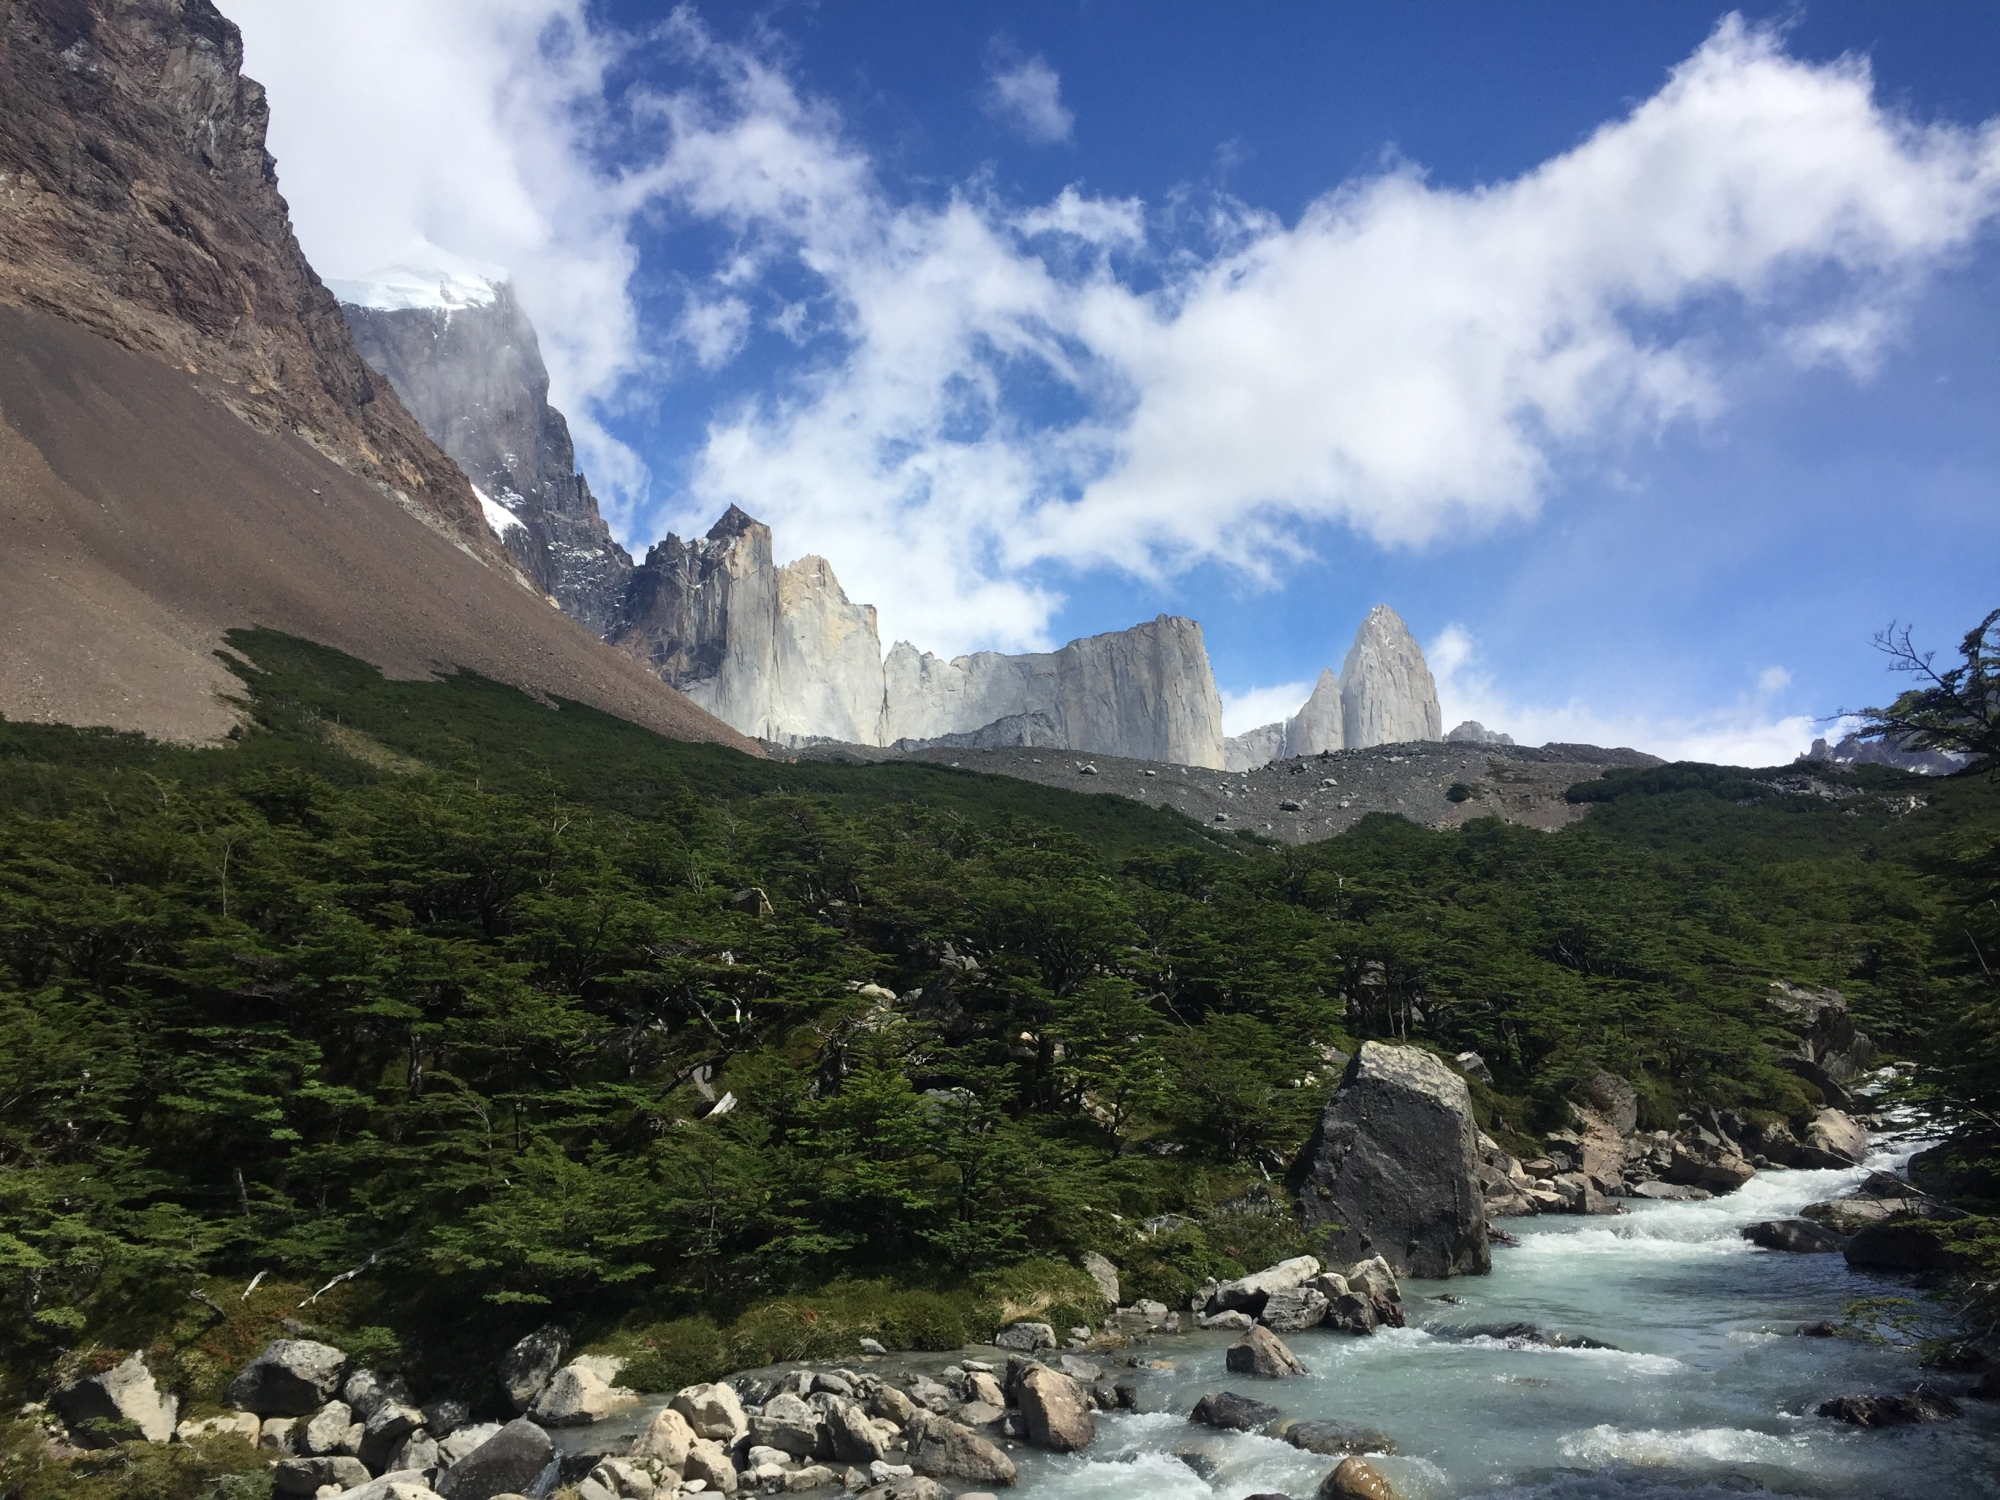 A view or the britanico lookout in torres del paine, chile. There are huge rock faces in the distance sticking straight up out of the ground, blus skies with clouds, and a turquoise river flowing past some large boulders.